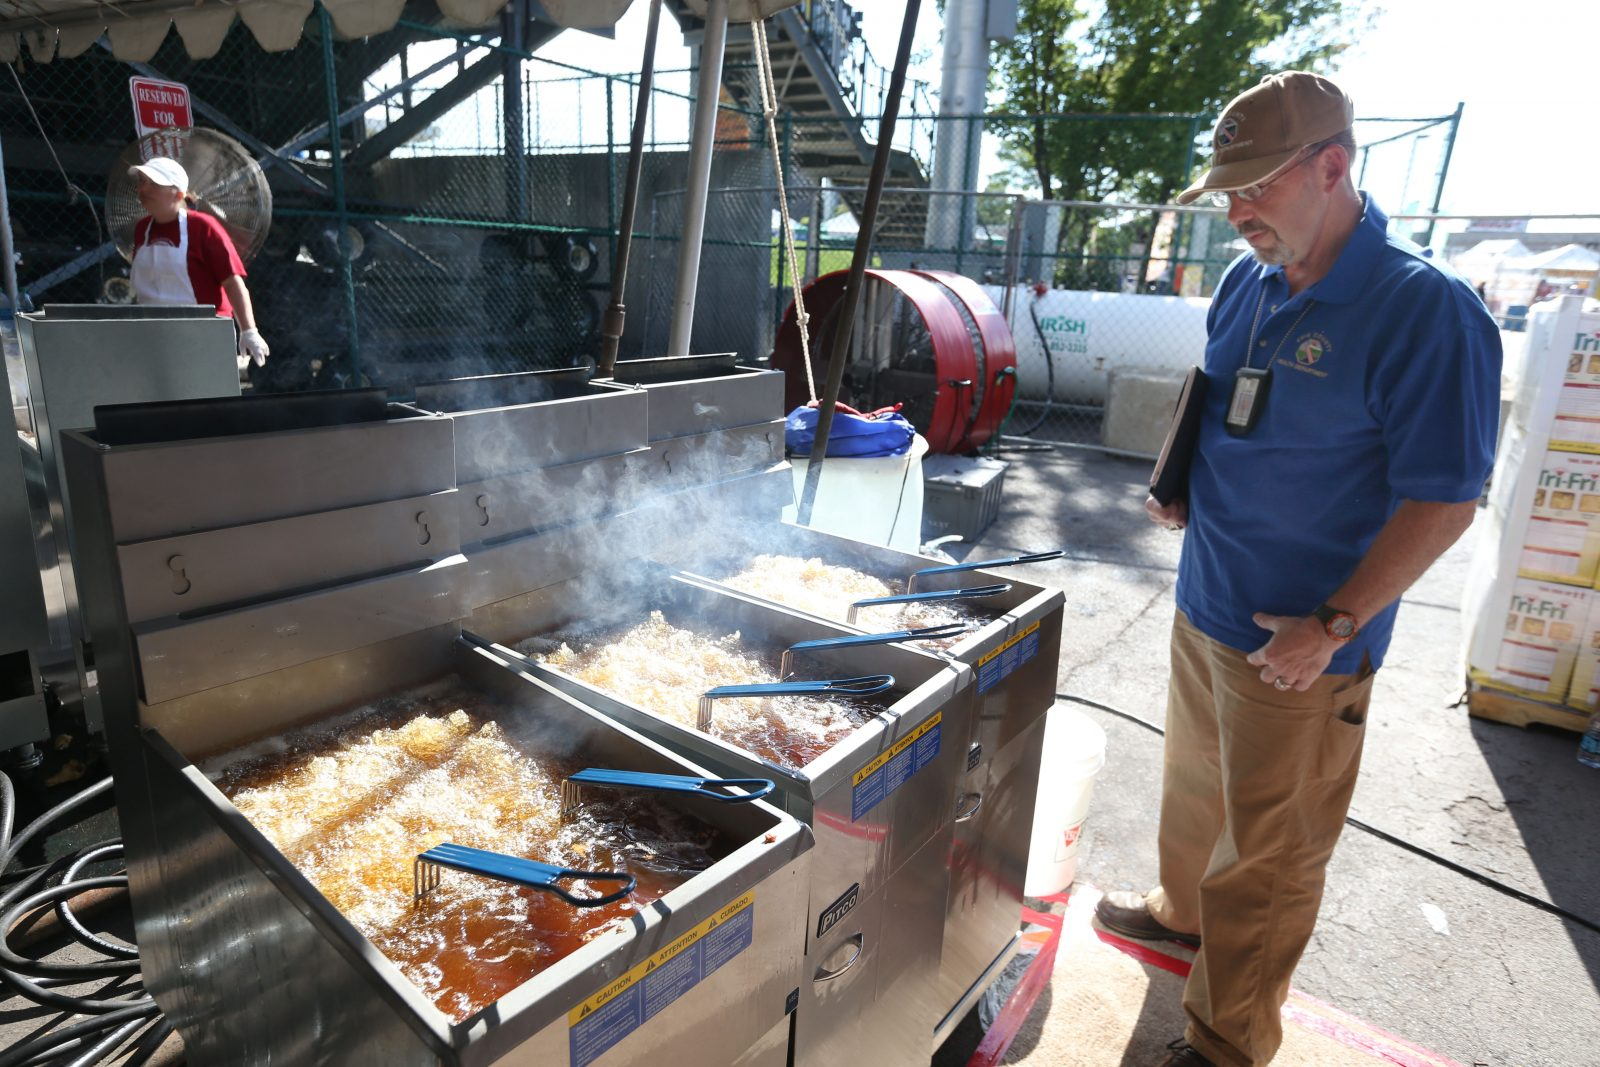 The Erie County Department of Health conducts food inspections at all the area festivals.  They inspect the operations at the Buffalo Wing Festival, Saturday, Sept. 3, 2016. Inspector Daniel Thibodeau hangs around the area where the wings are cooked during the morning before the festival opens.  He observes the operation, looks at the condition of the equipment and takes temperatures of various batches of wings to be sure of consistently safe temperatures of cooked wings.  Here, he observes the operation. (Sharon Cantillon/Buffalo News)